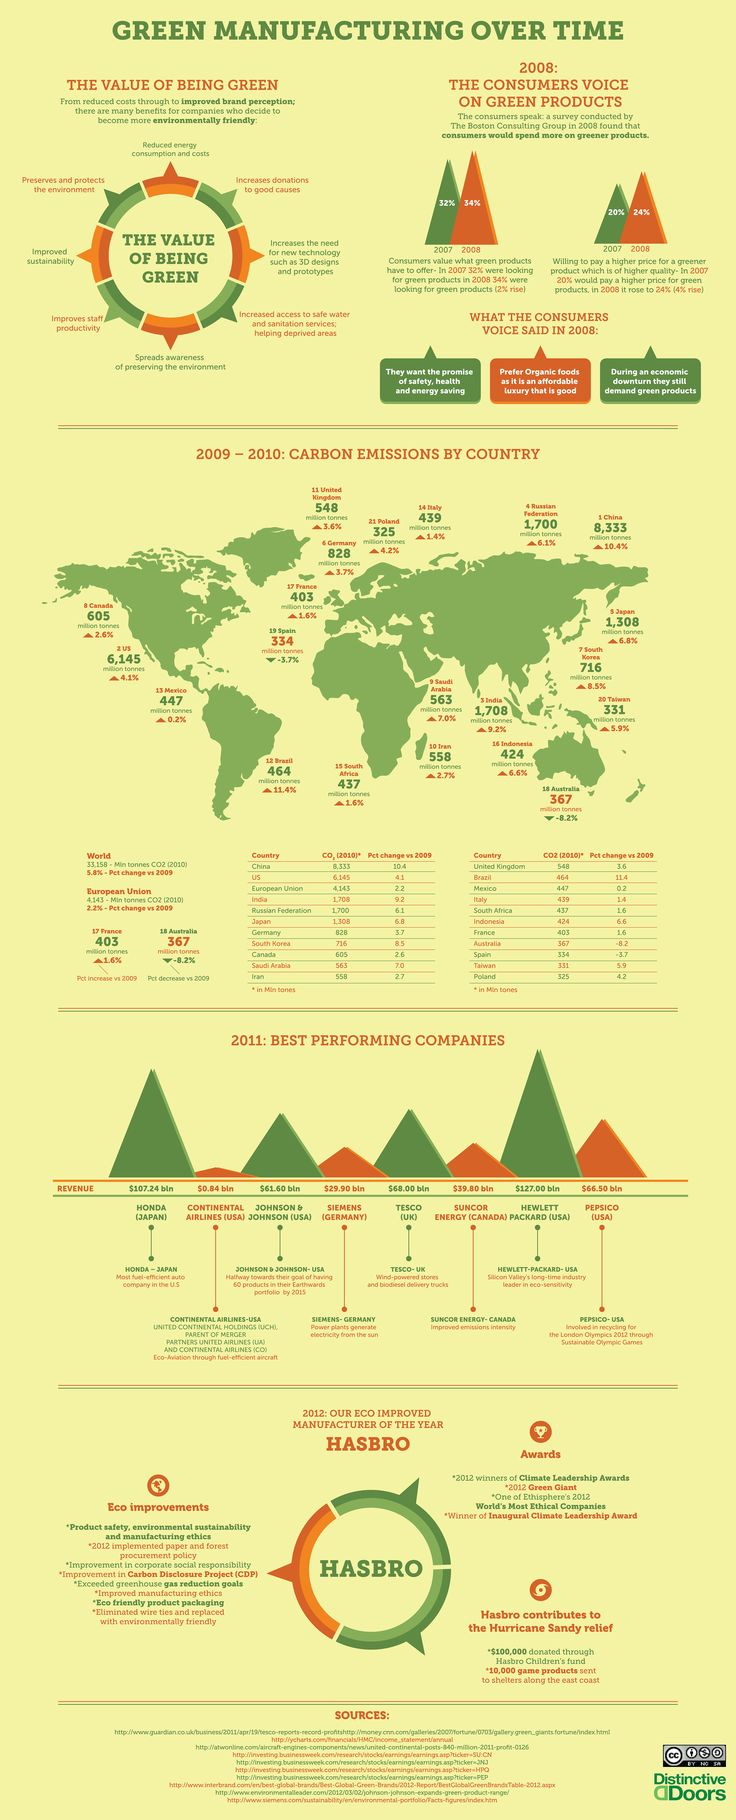 Infographic: Companies, consumers see benefits from green manufacturing | GreenBiz.com